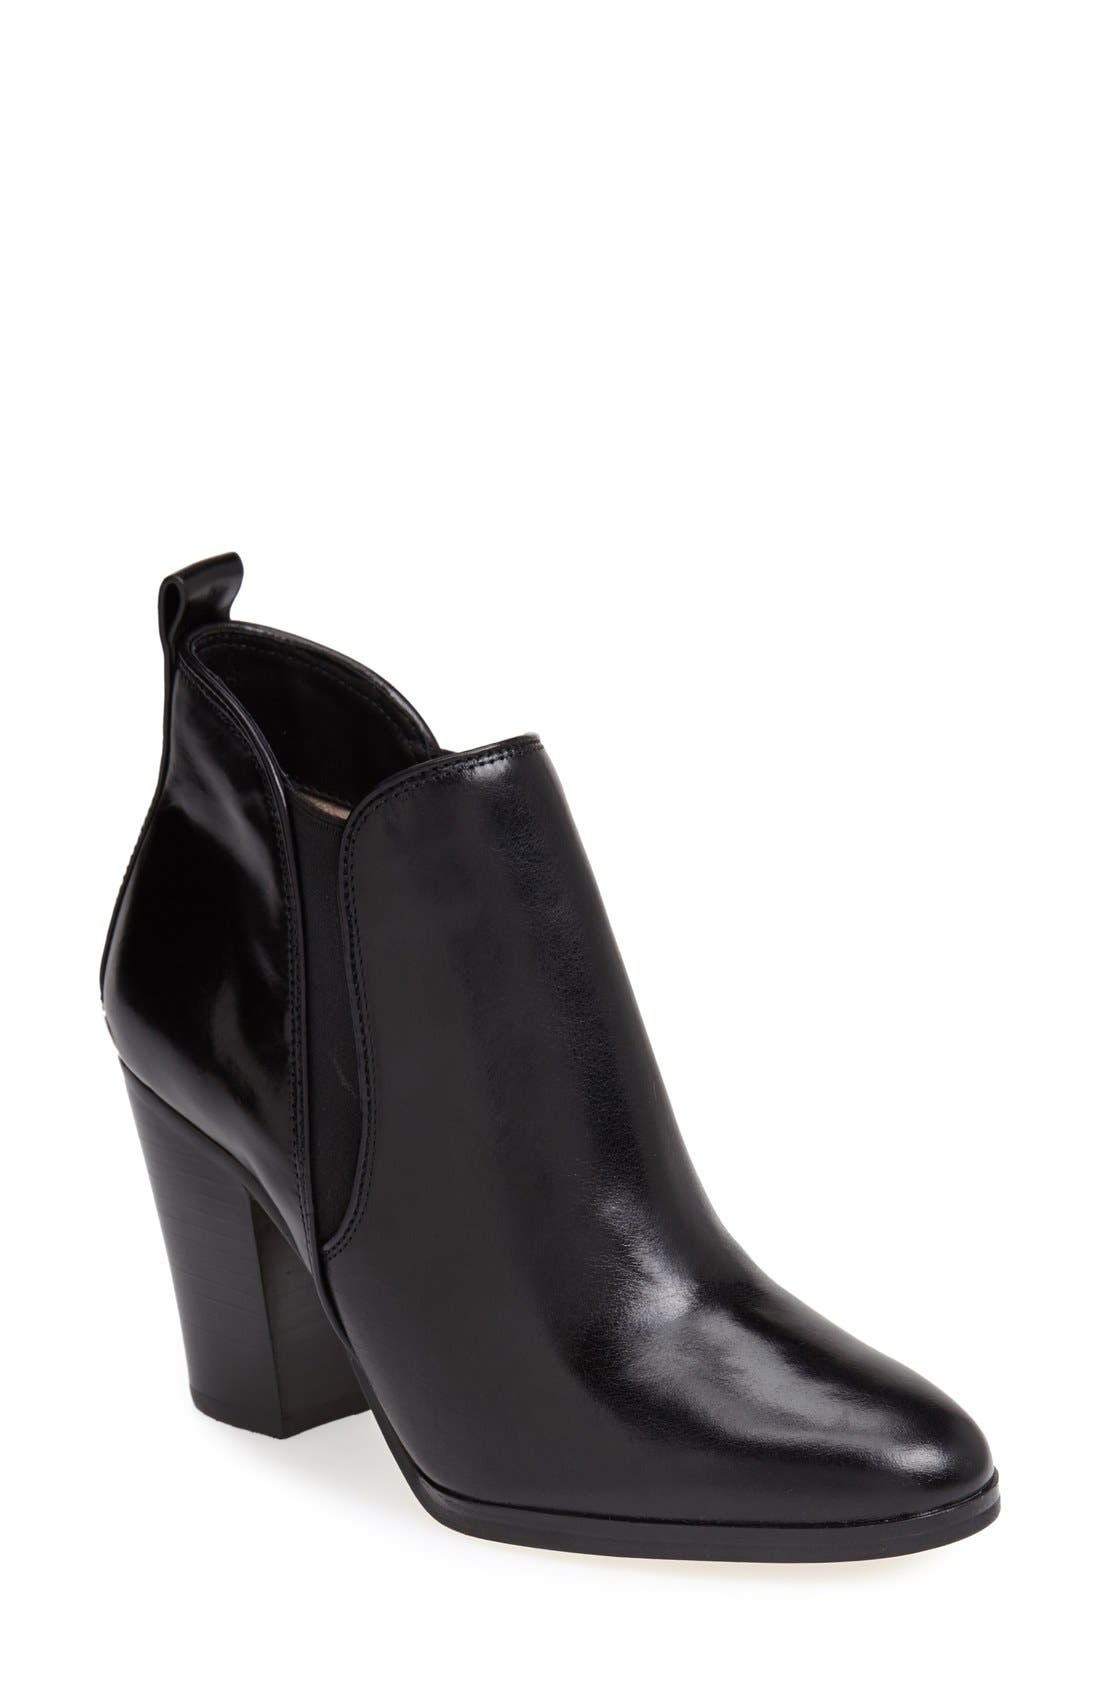 Alternate Image 1 Selected - MICHAEL Michael Kors 'Brandy' Leather Bootie (Women)